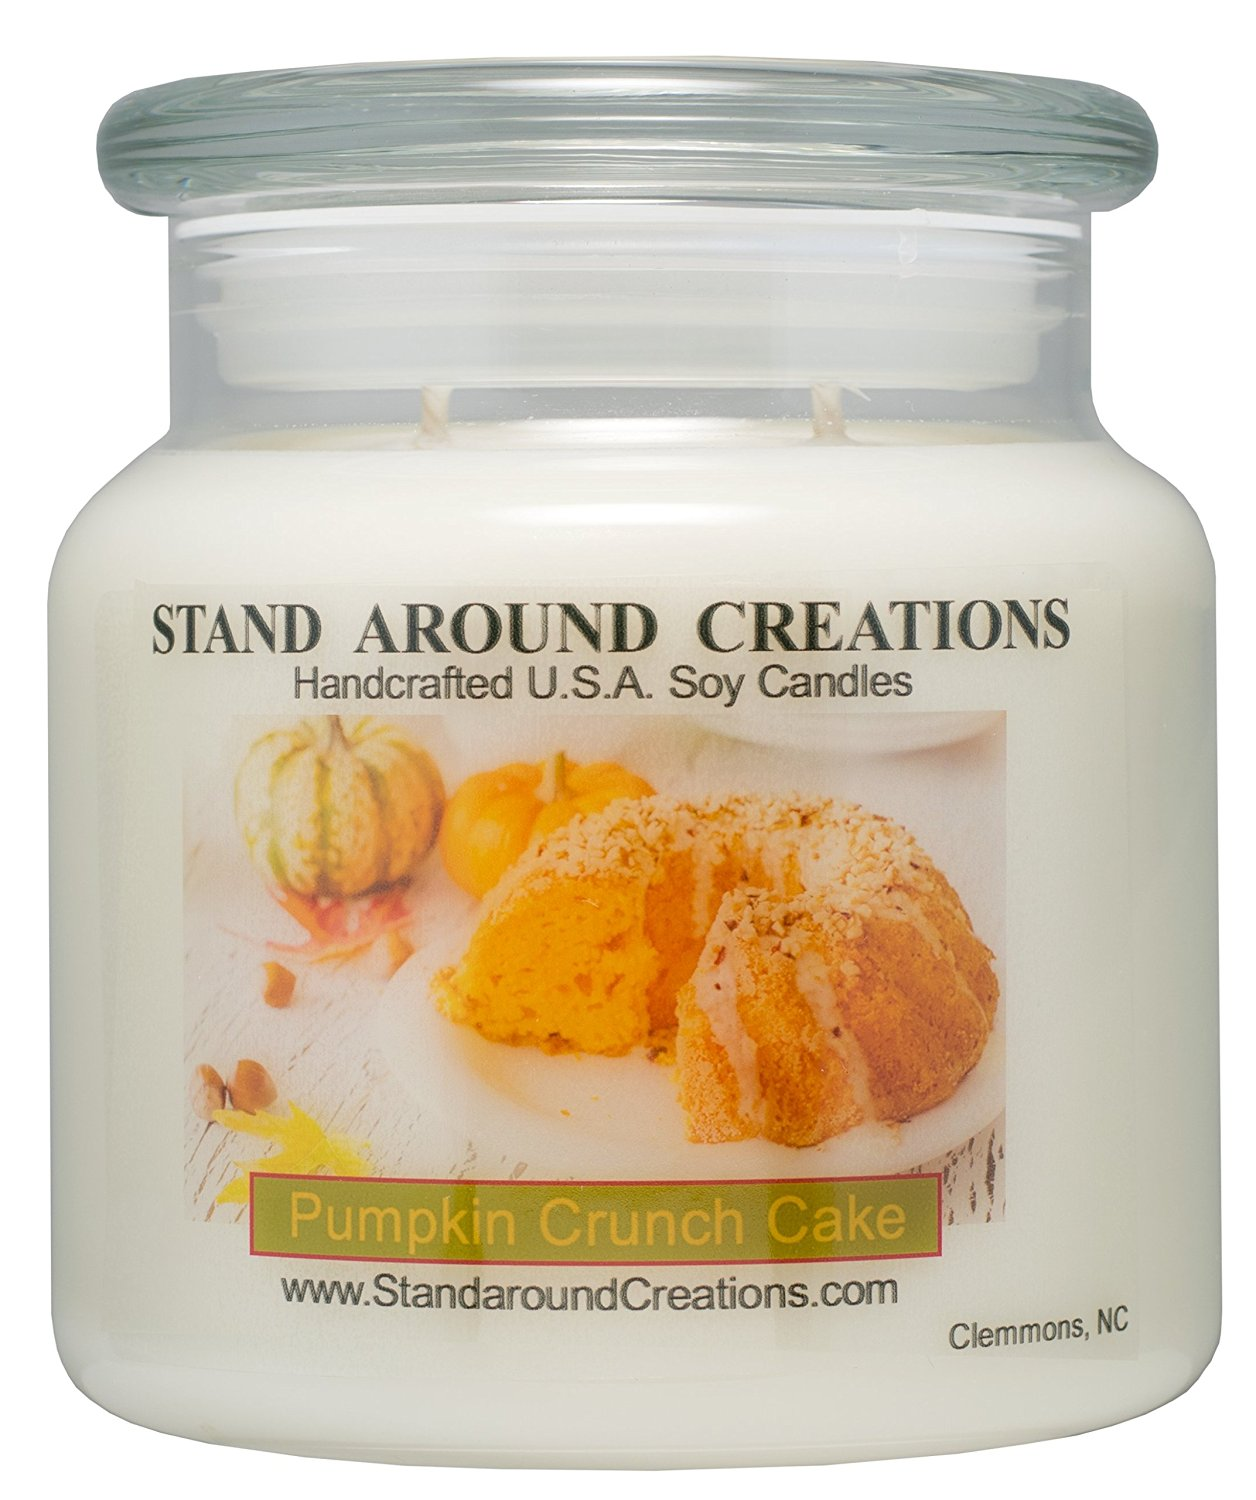 Premium 100% Soy Apothecary Candle - 16 oz. - Scent: Pumpkin Crunch Cake - The aroma of creamy pumpkin pie filling, surrounded w/ freshly baked cake, melted butter, pecans, and hints of spice.